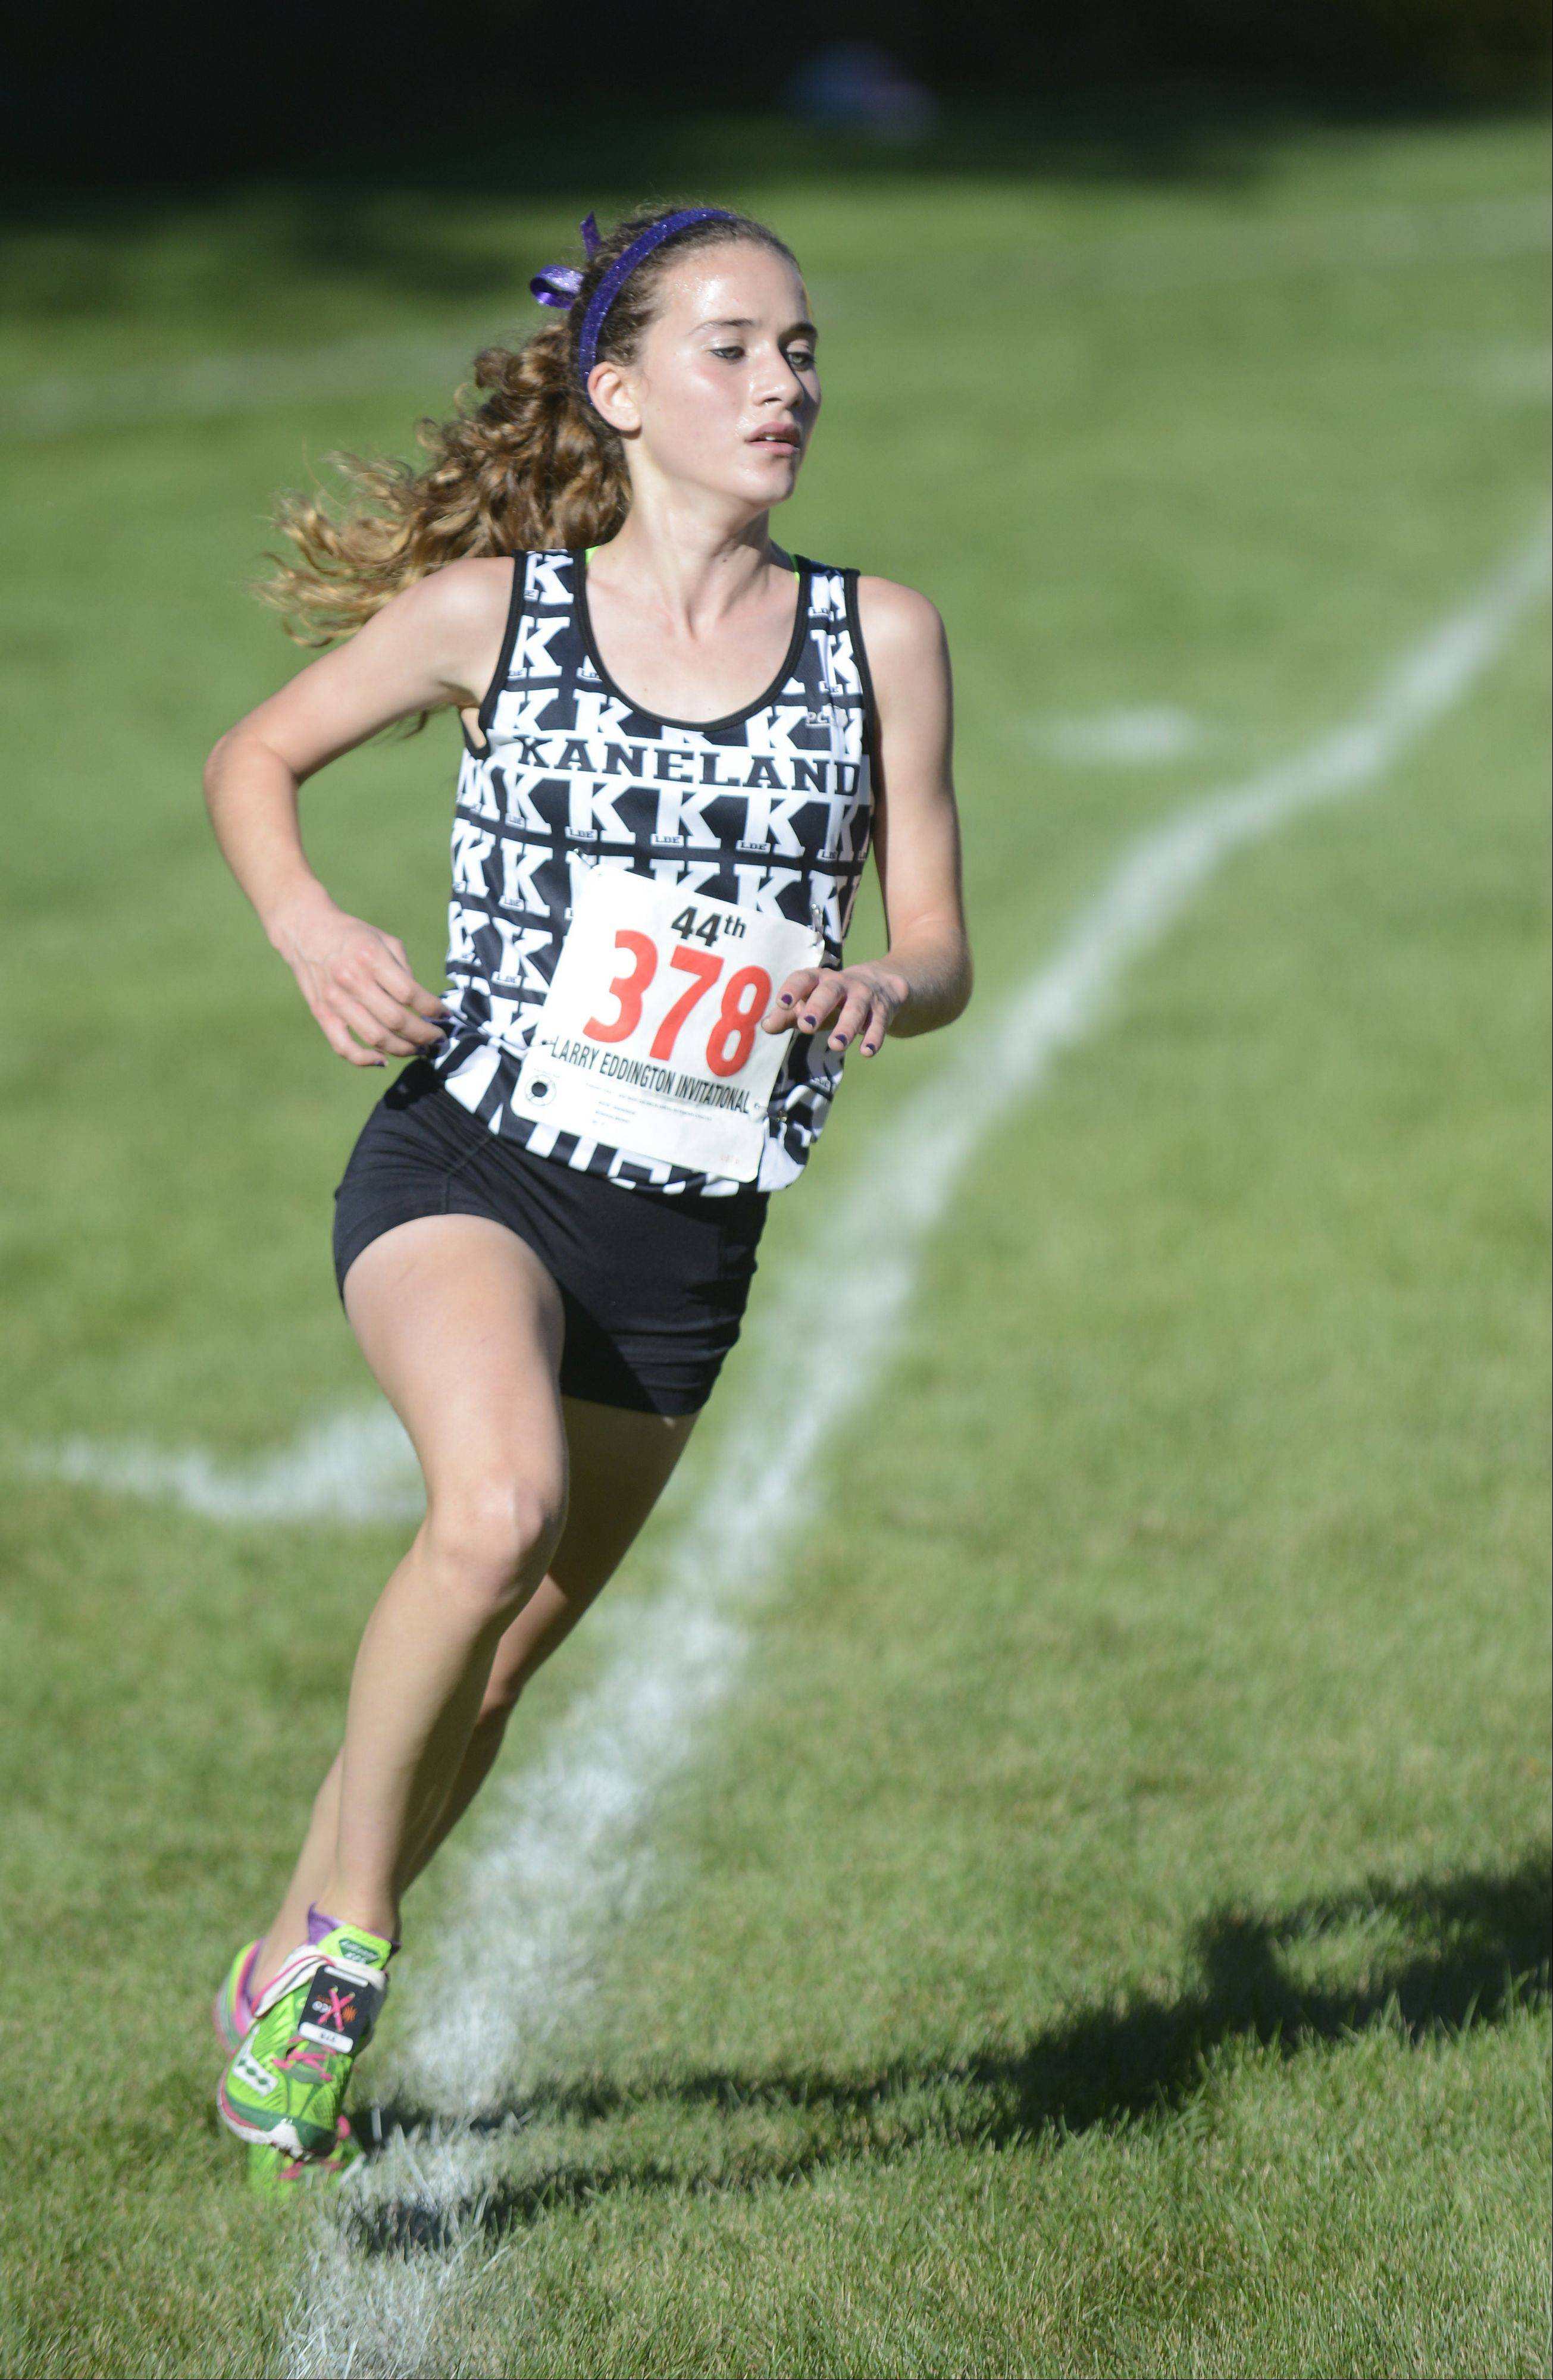 Kaneland's Brianna Bower takes fifth place at the Kaneland Invitational cross country meet in Elburn on Saturday, September 21.